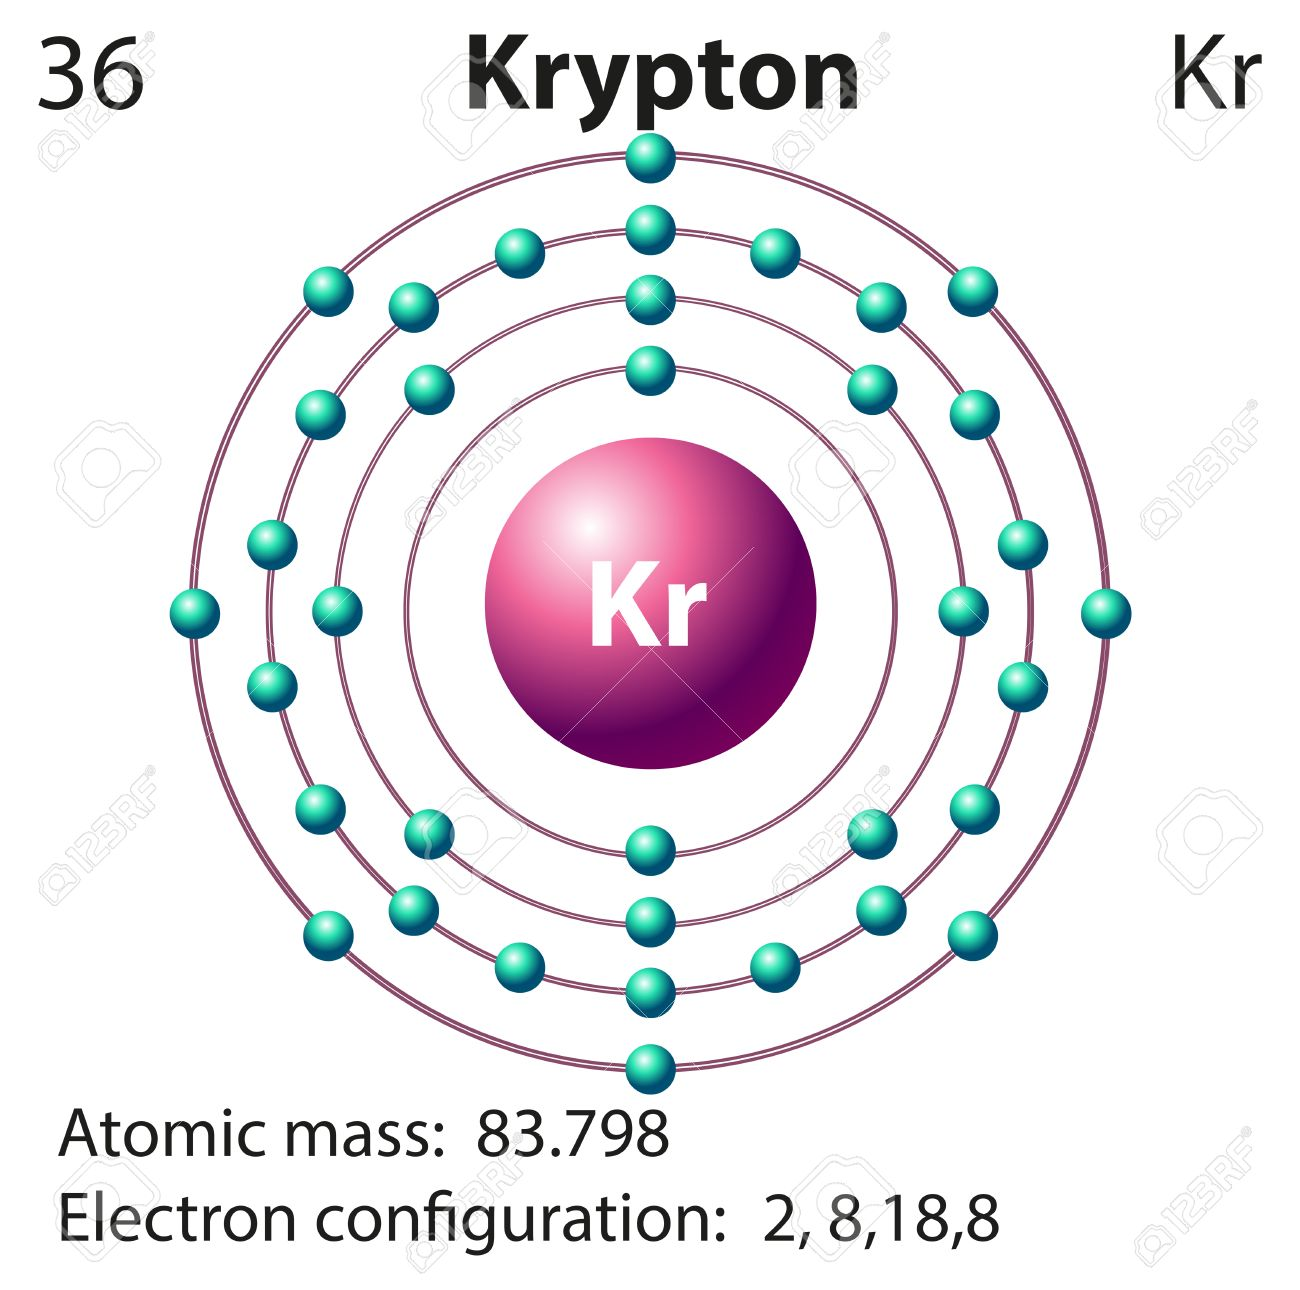 Human biology online lab krypton 123rfimagesblueringmediablueringmedia1509blueringmedia15090106445301889 symbol and electron diagram for krypton illustration stock vectorg buycottarizona